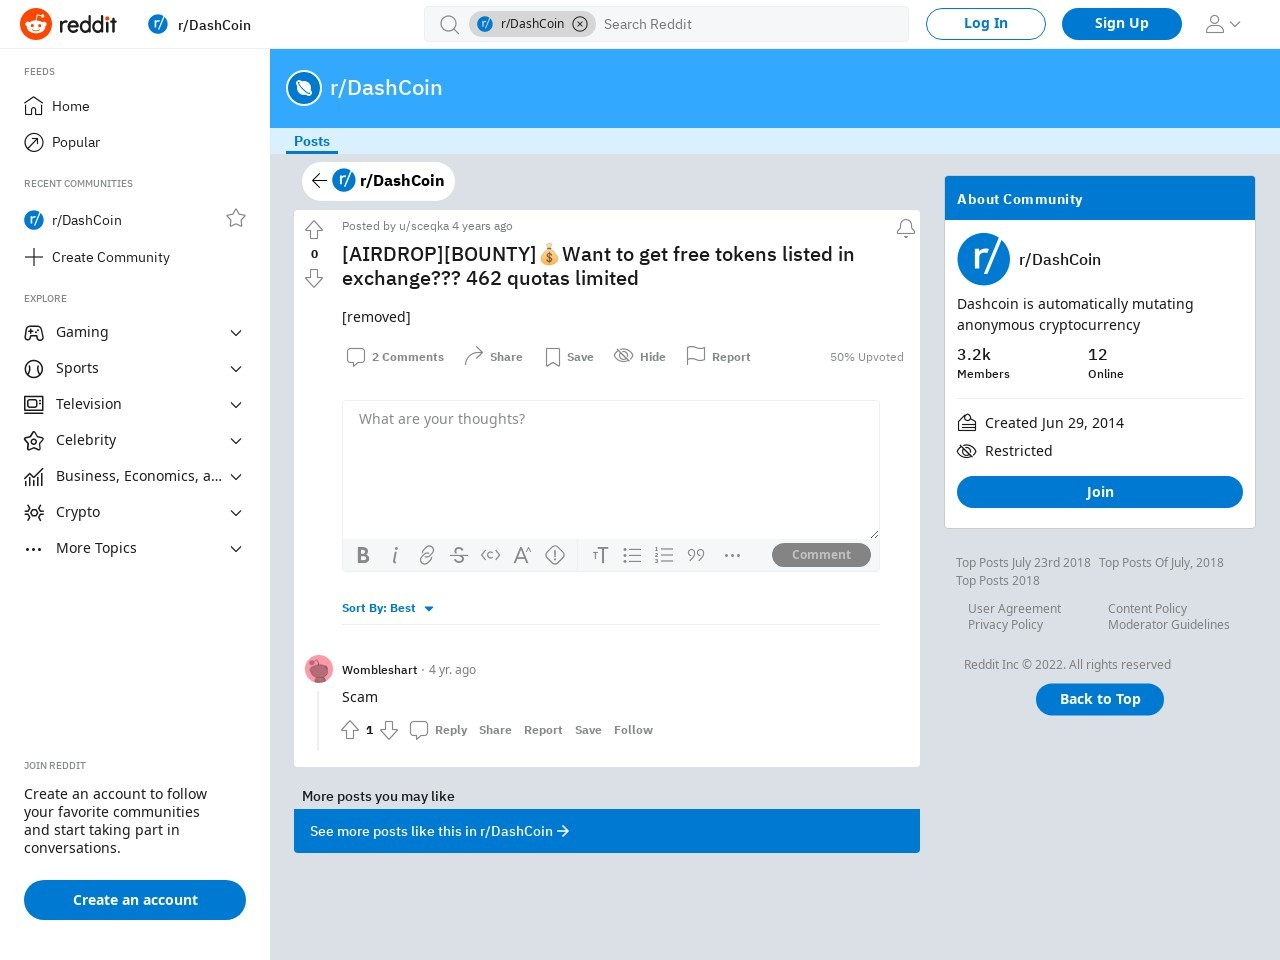 [AIRDROP][BOUNTY]💰Want to get free tokens listed in exchange??? 462 quotas limited